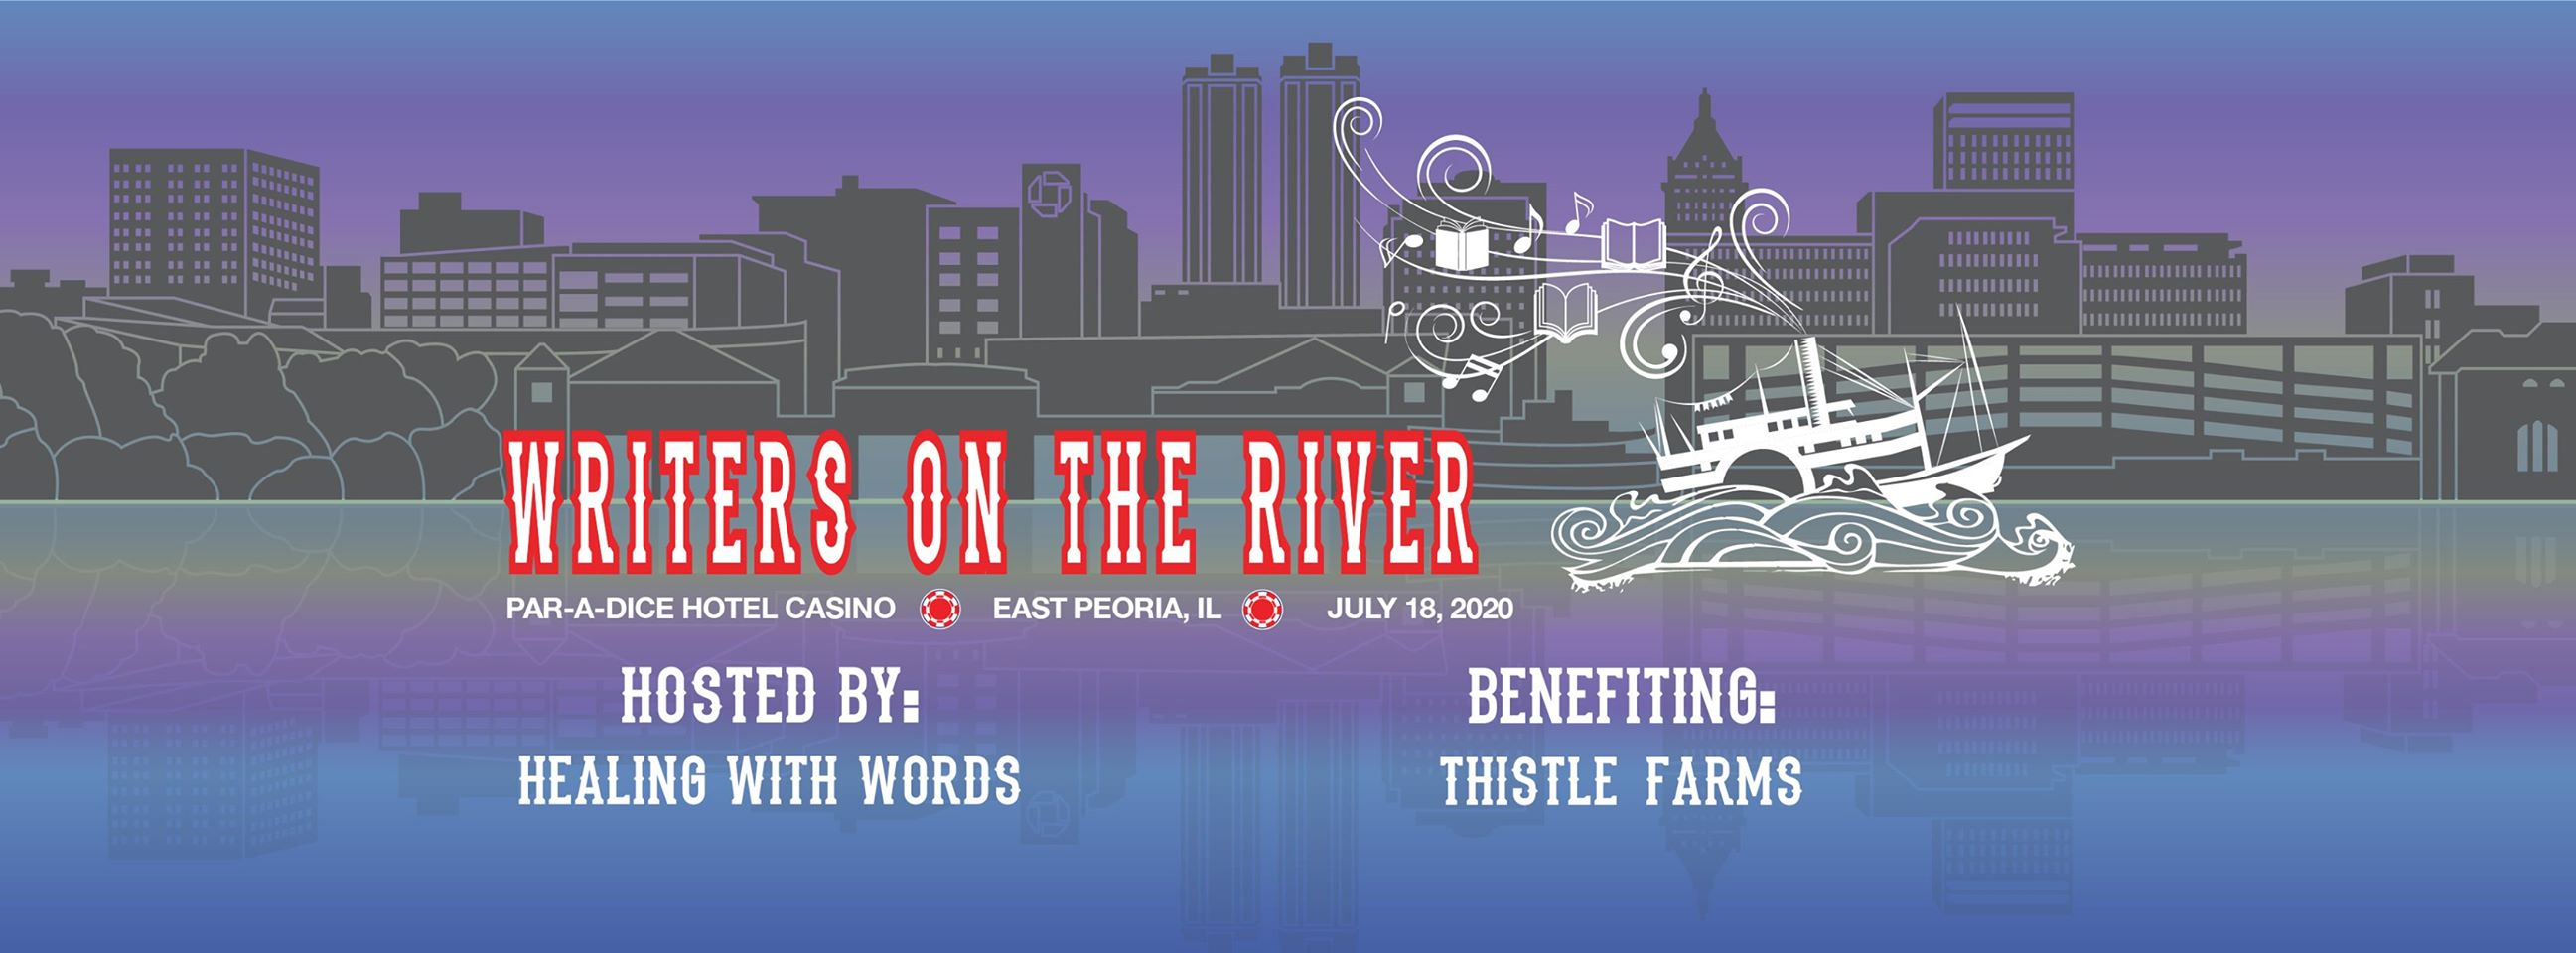 writersontheriver2020